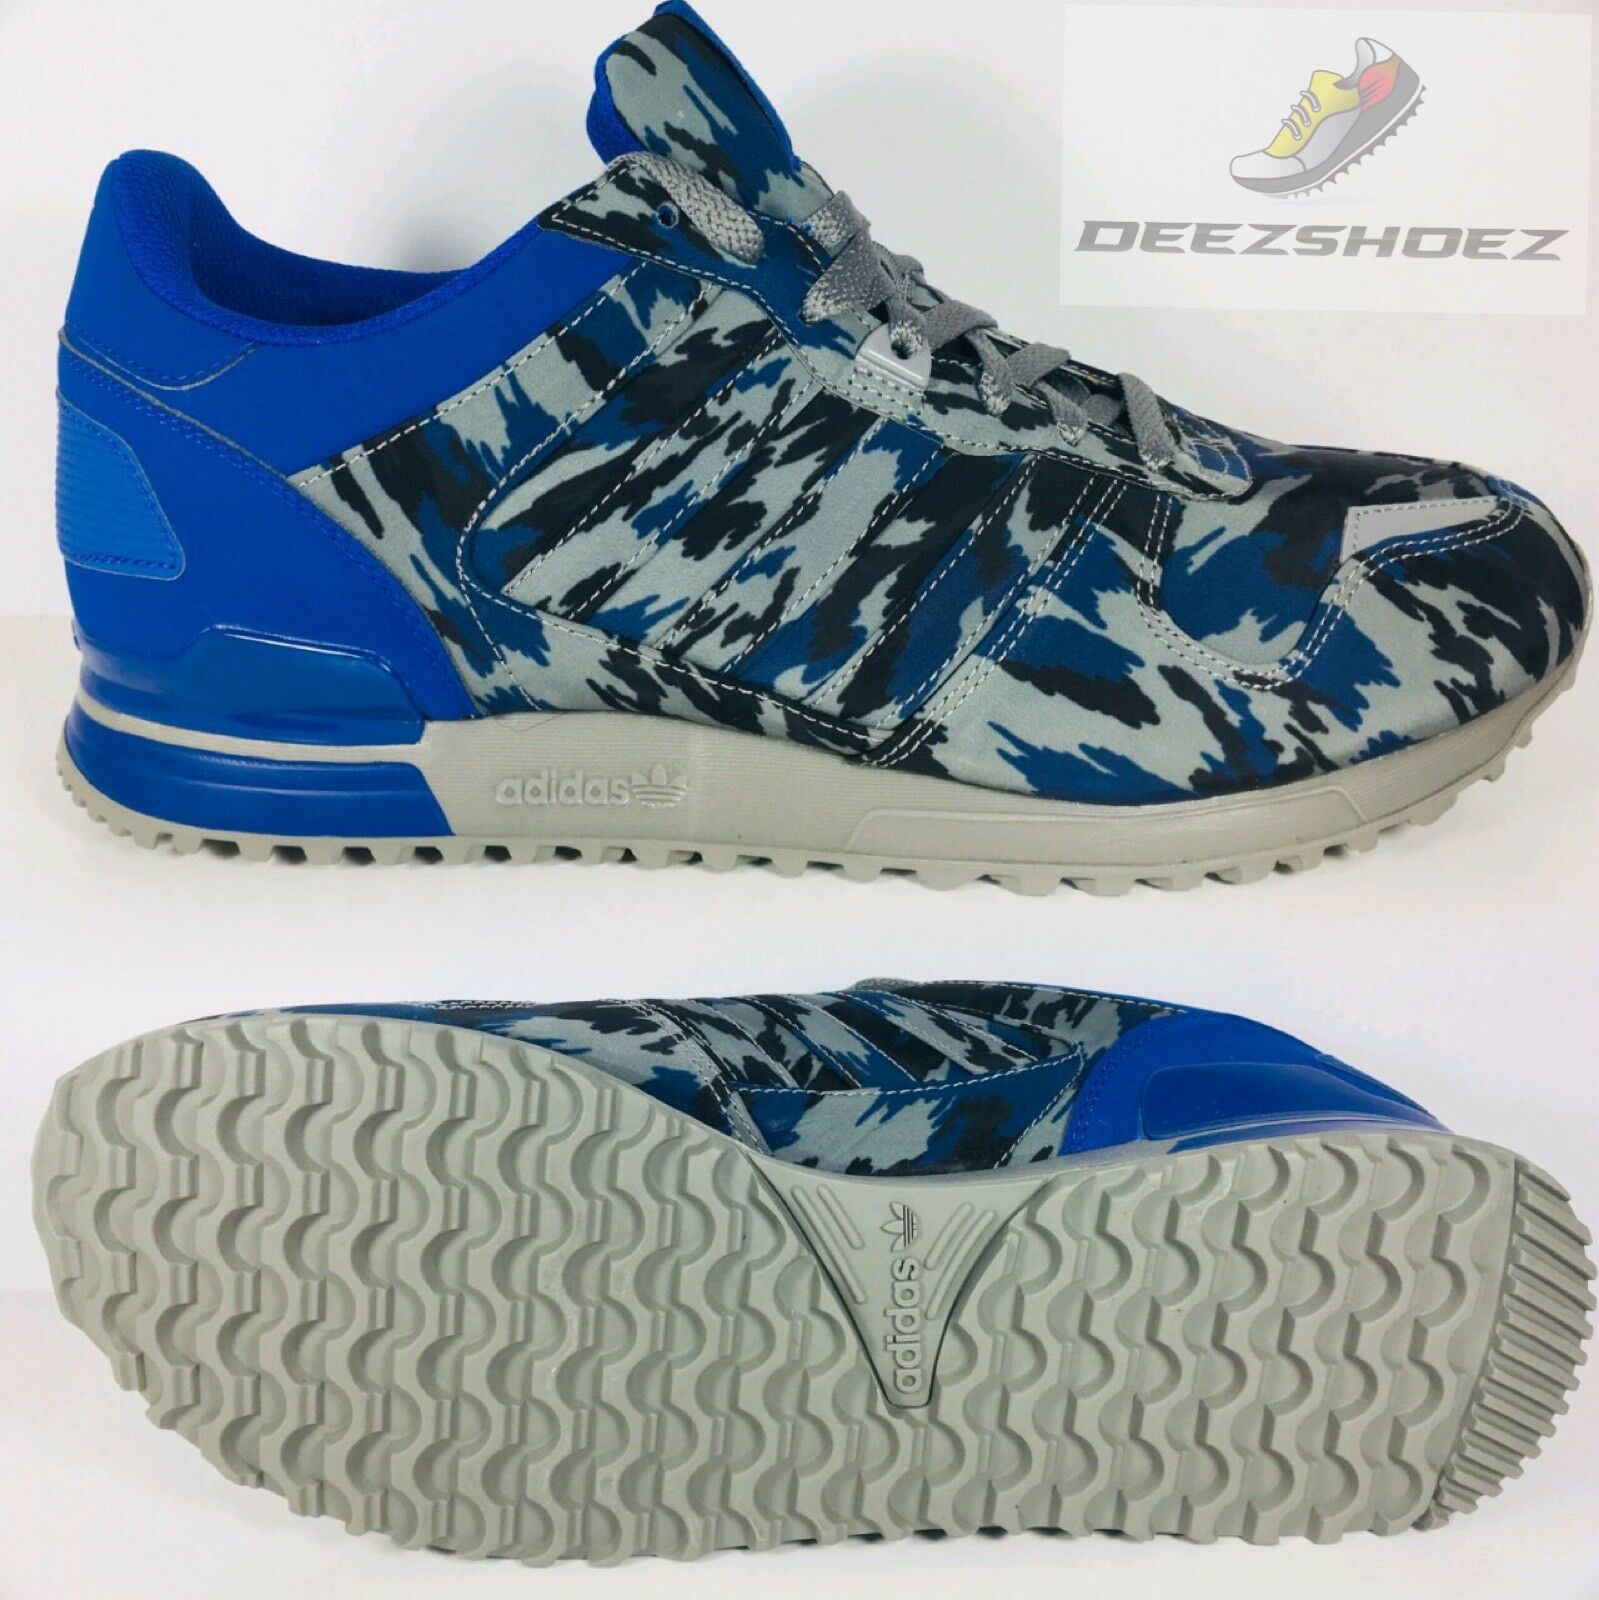 Adidas ZX 700 Camouflage Blue/Black/Gray Mens B24838  Comfortable